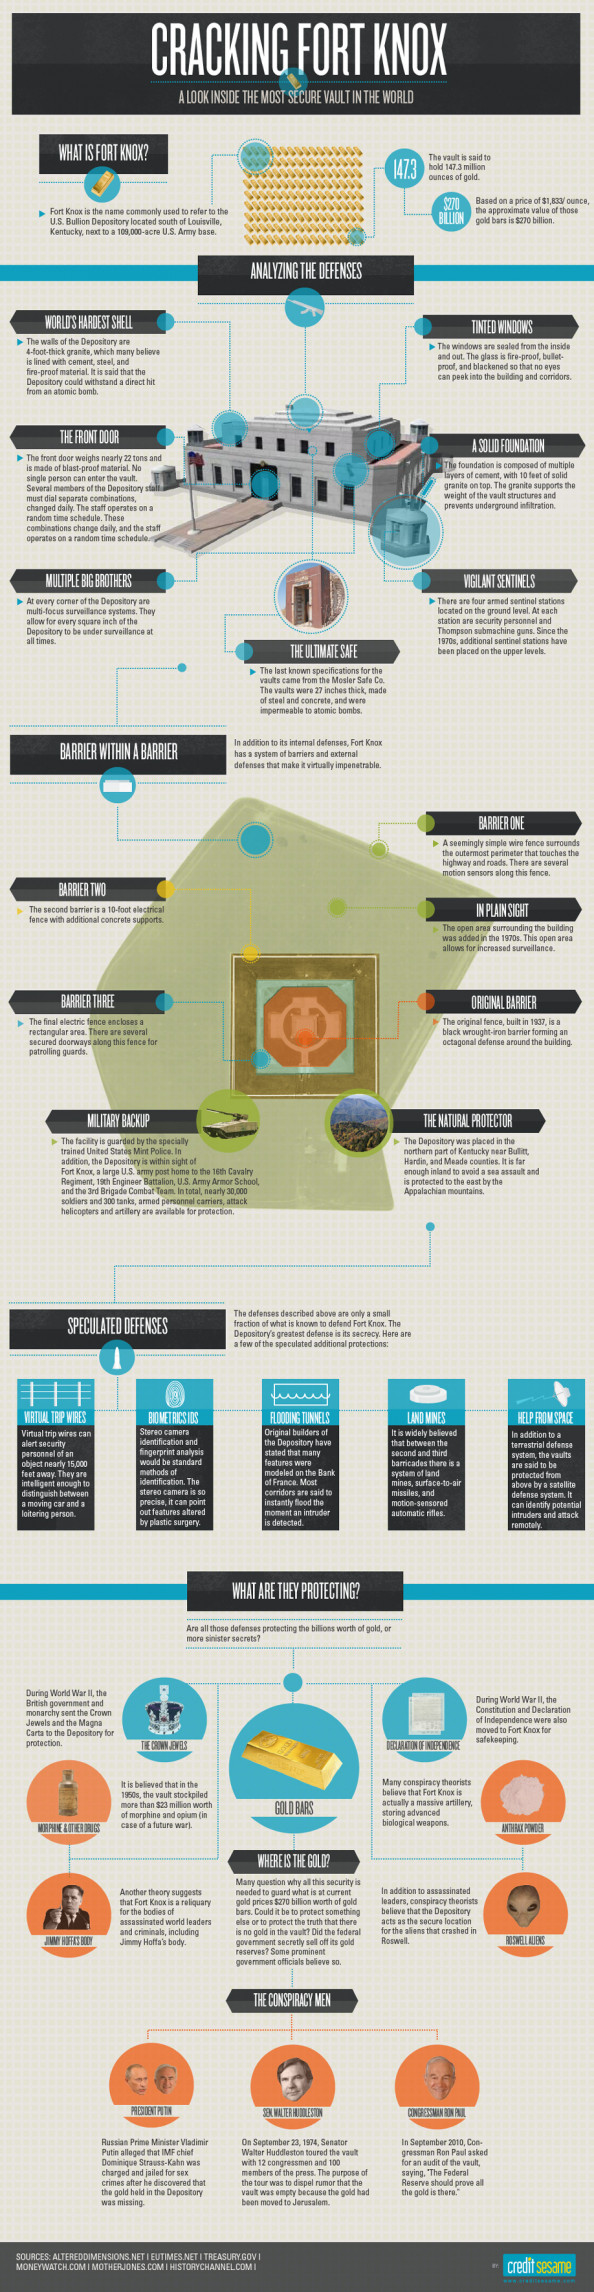 Cracking Fort Knox Infographic